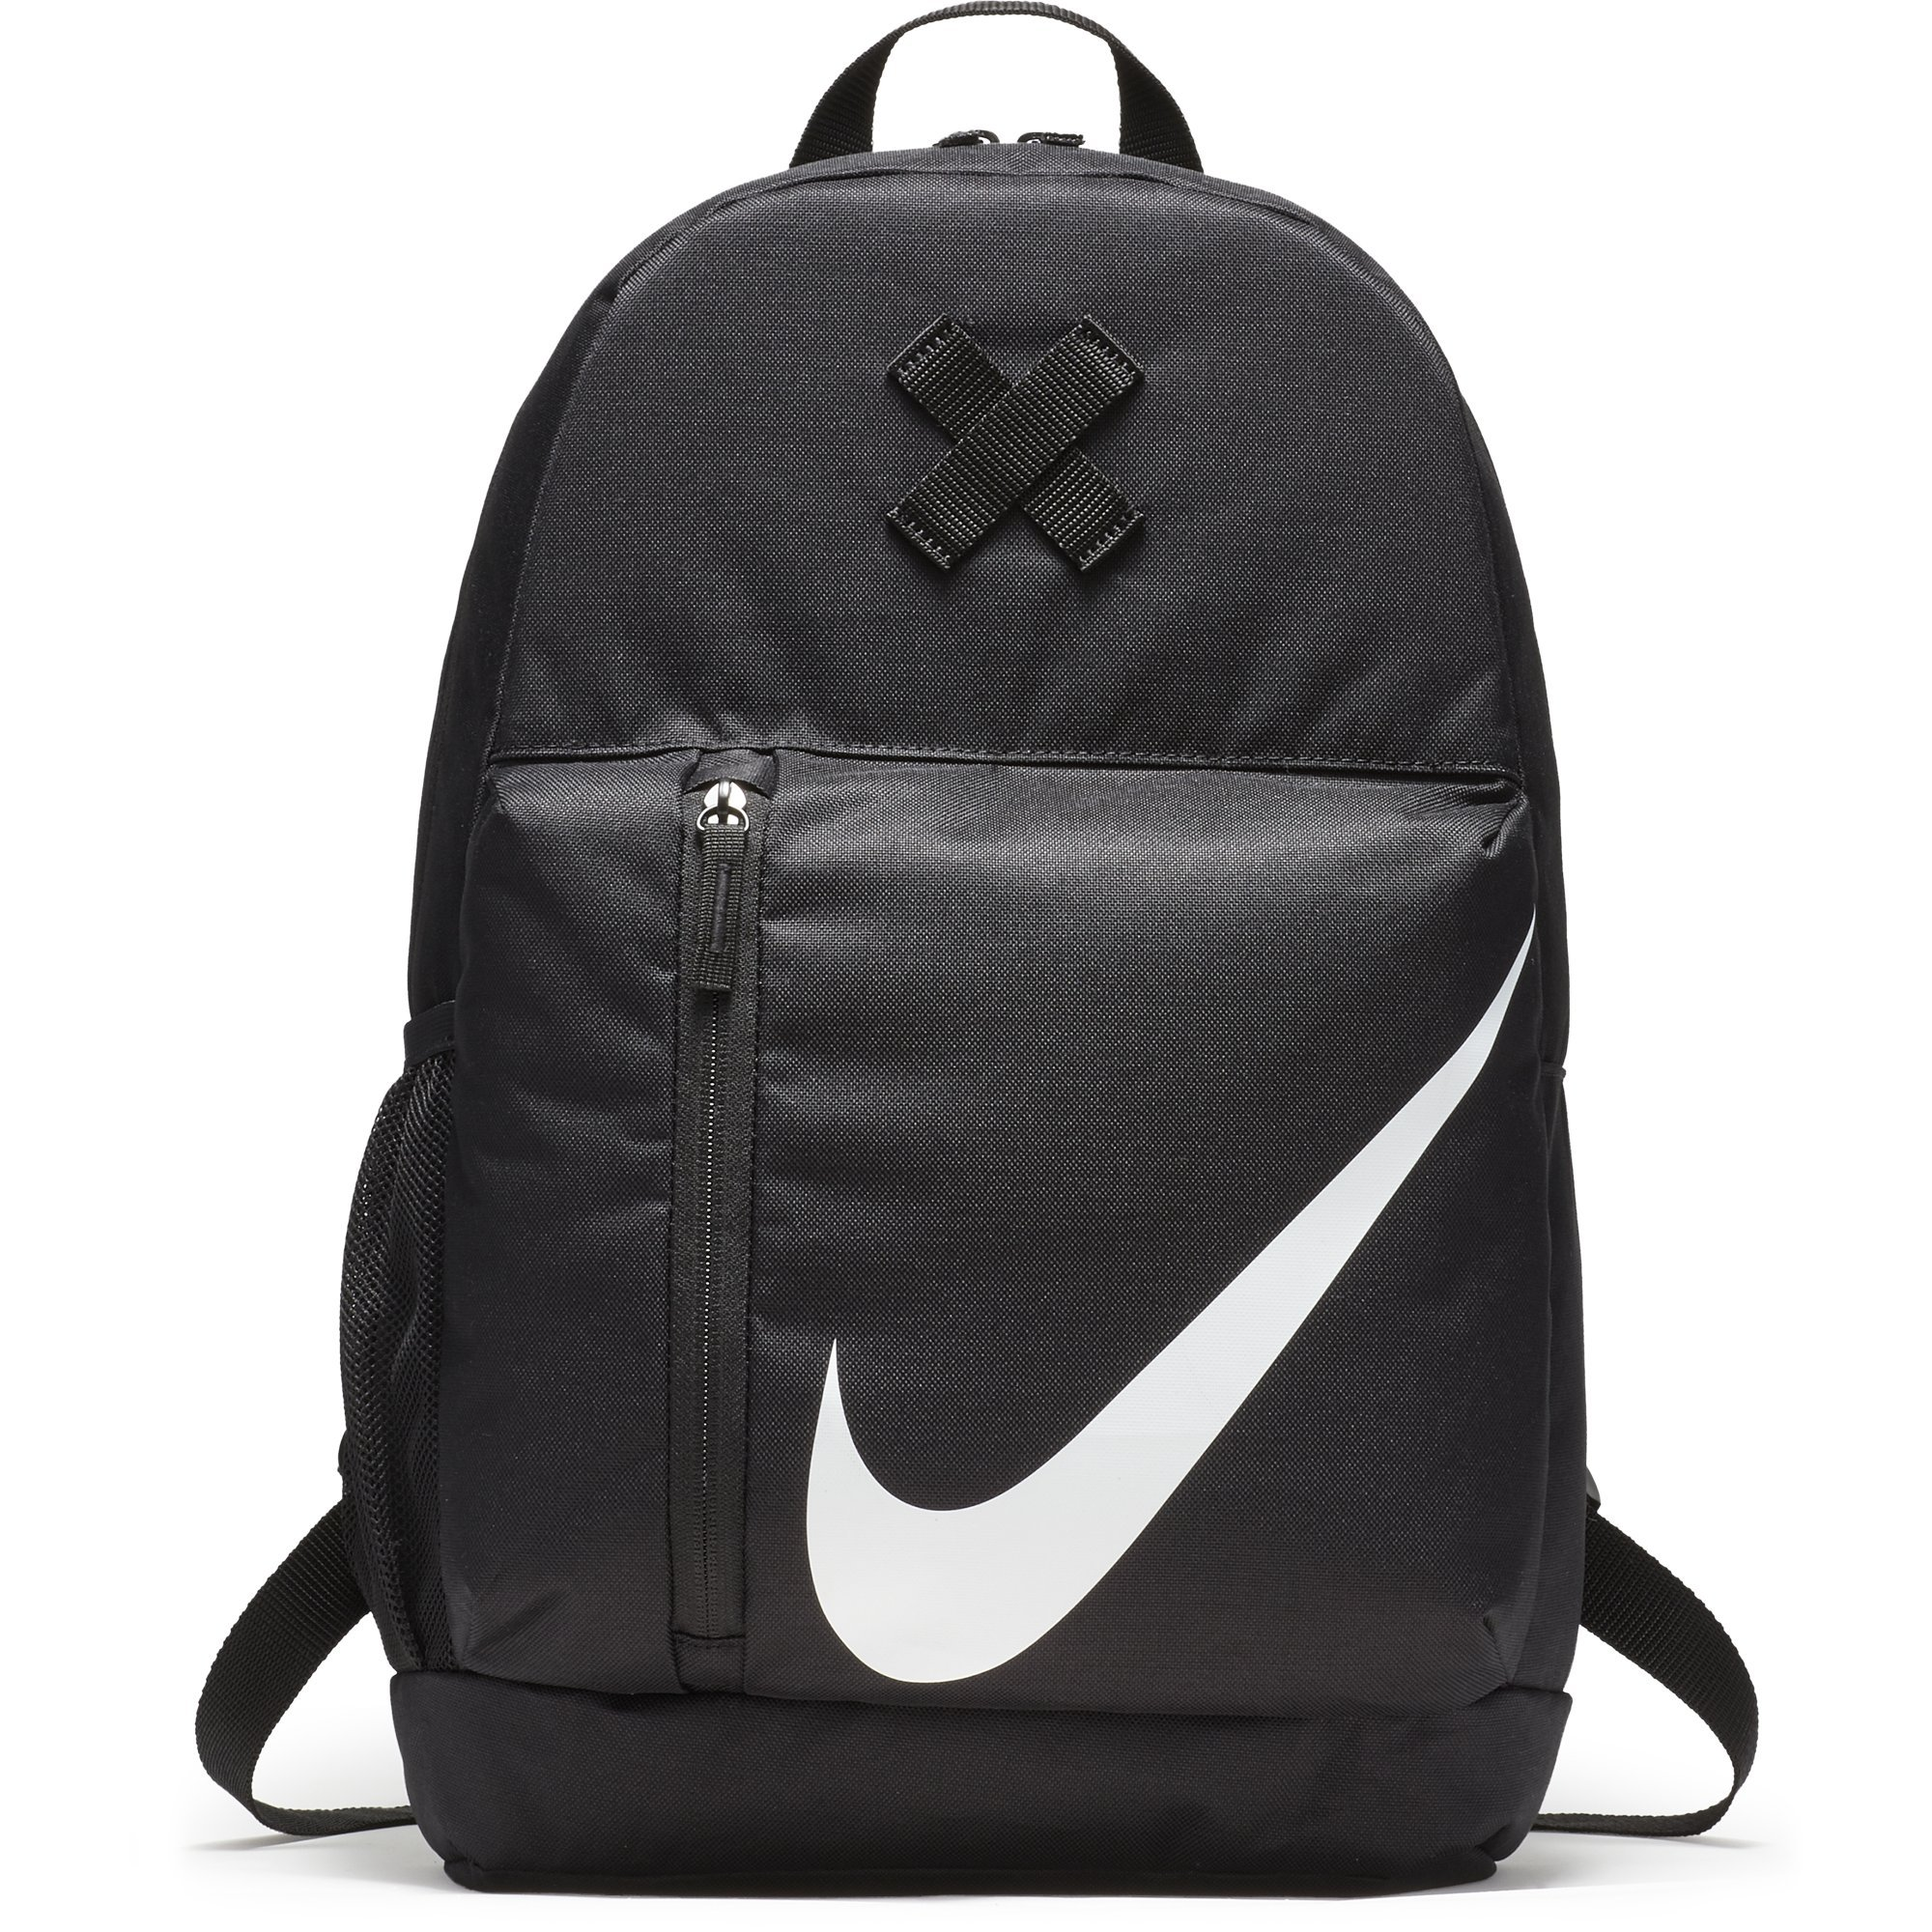 NIKE Kids' Elemental Backpack, Black/Black/White, One Size